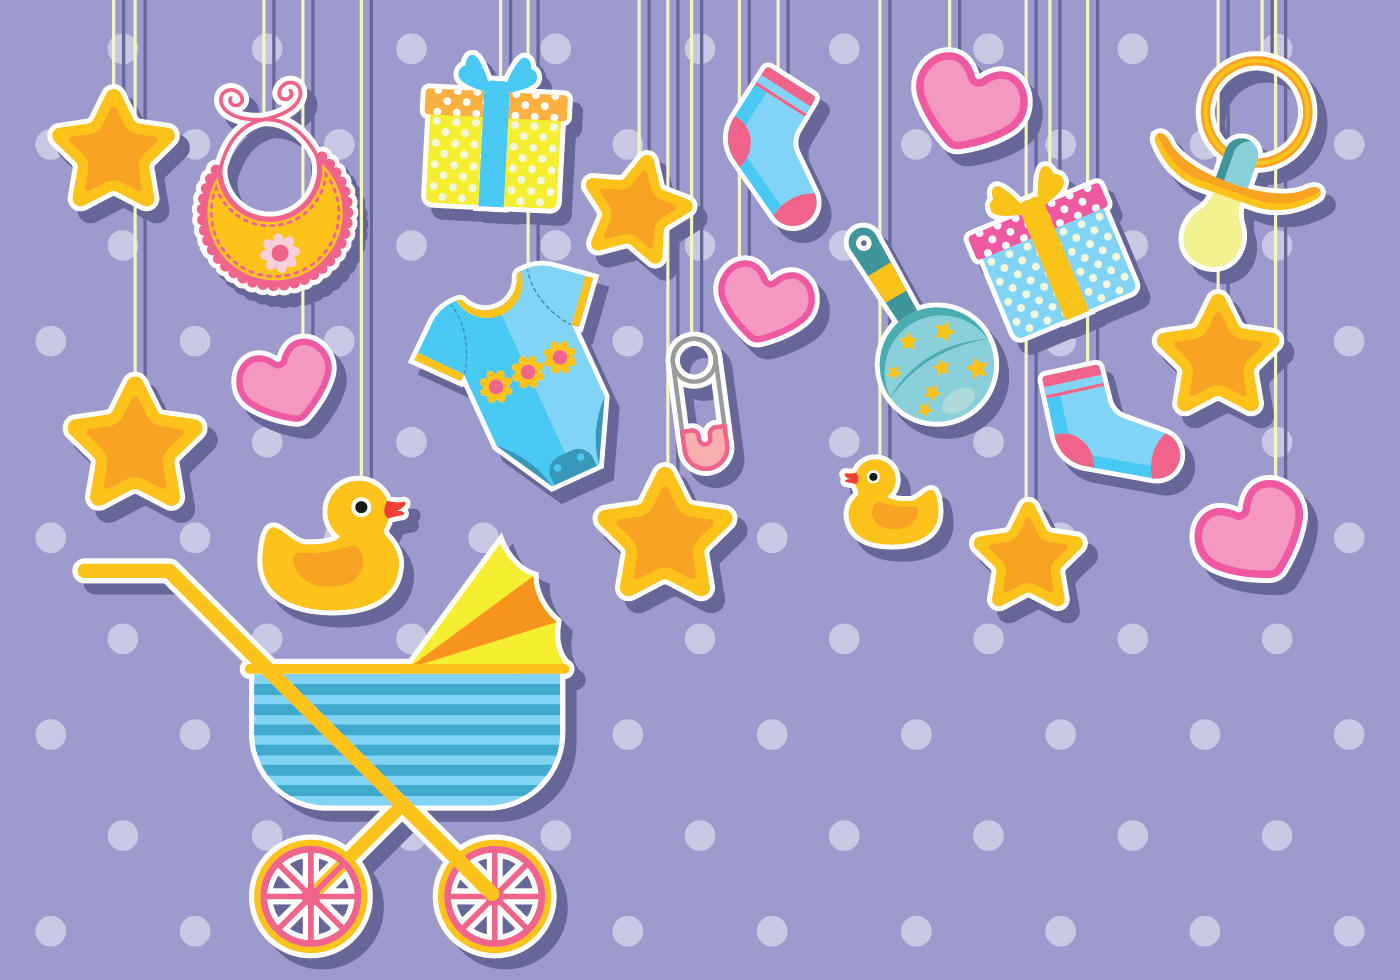 Baby Shower Free Vector Art 2397 Free Downloads